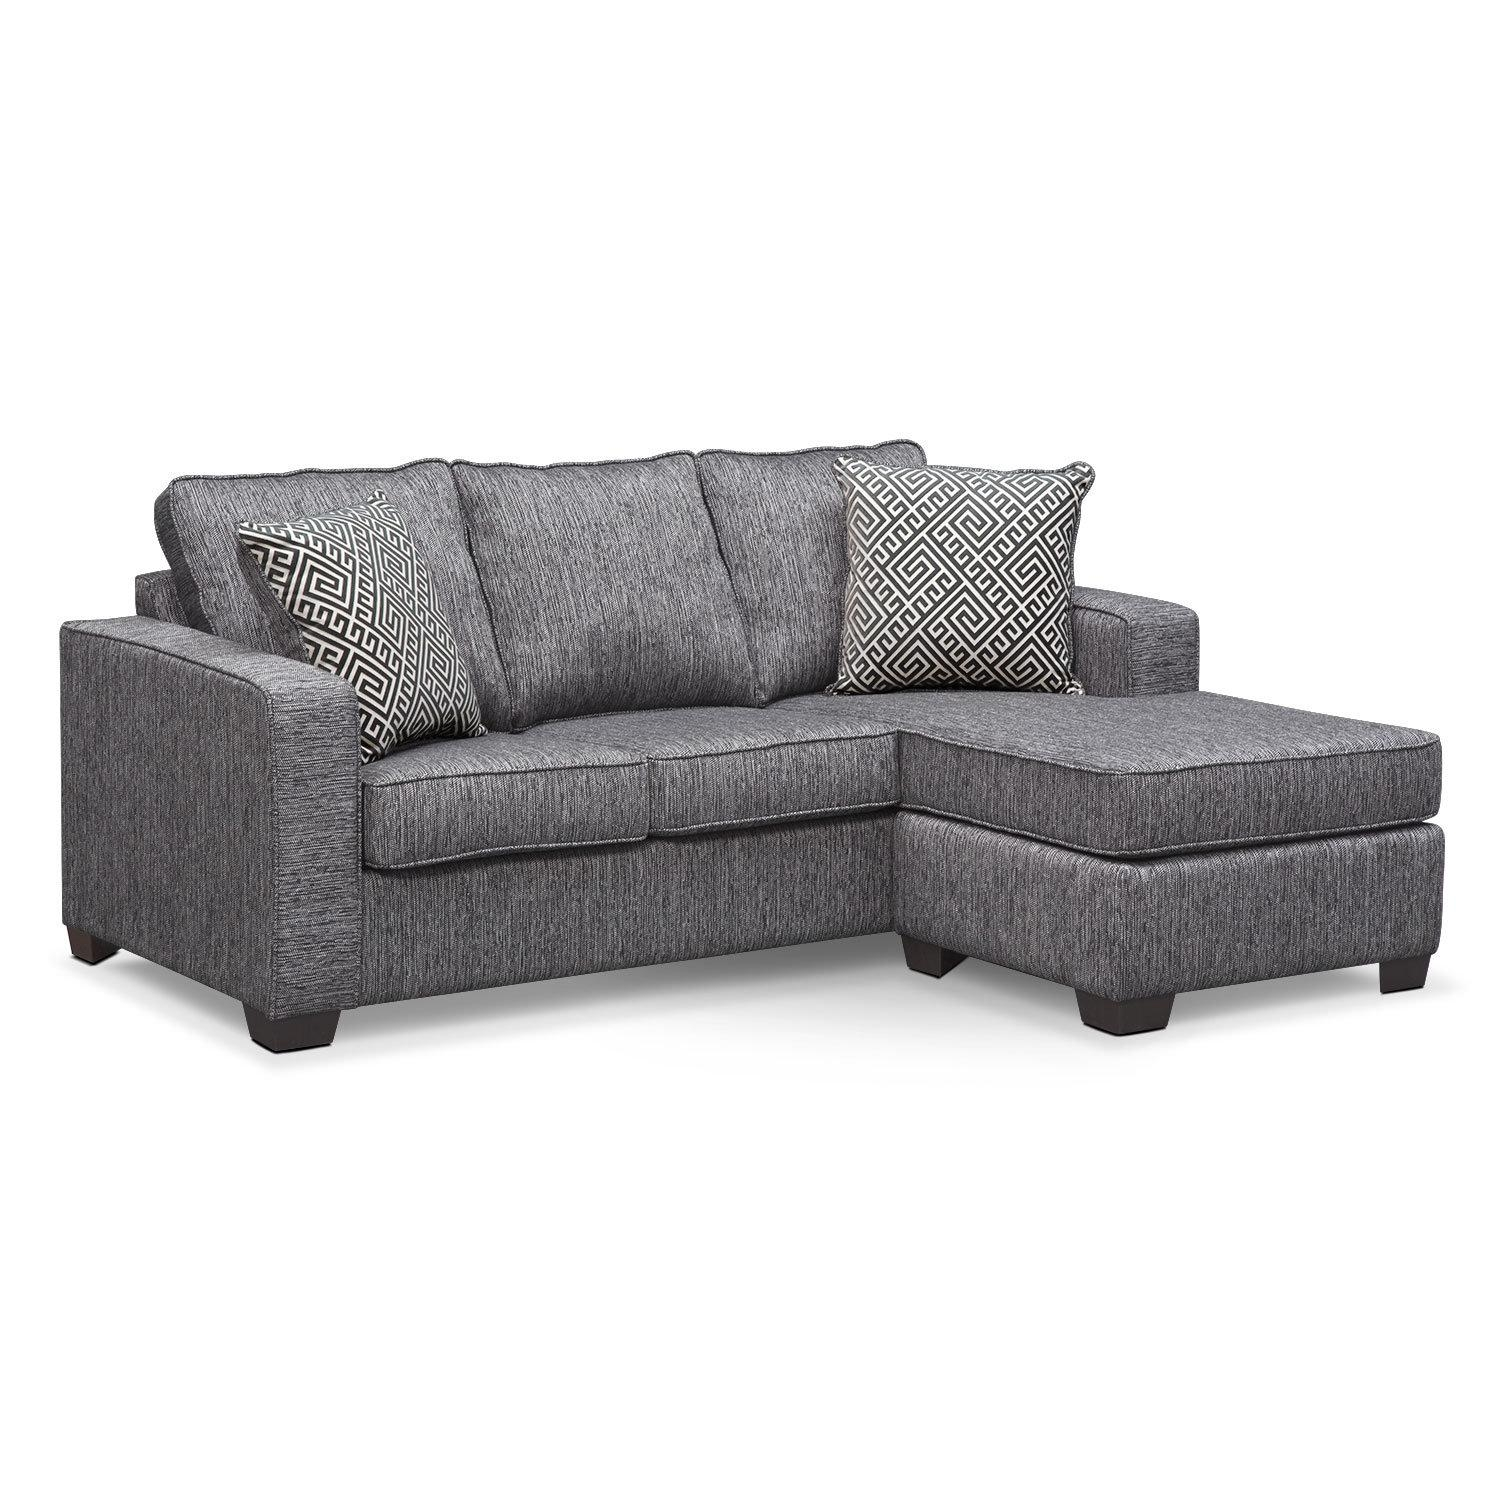 Davis Queen Sleeper Sofa With Ideas Hd Images 38625 | Kengire With Davis Sleeper Sofas (Image 4 of 20)